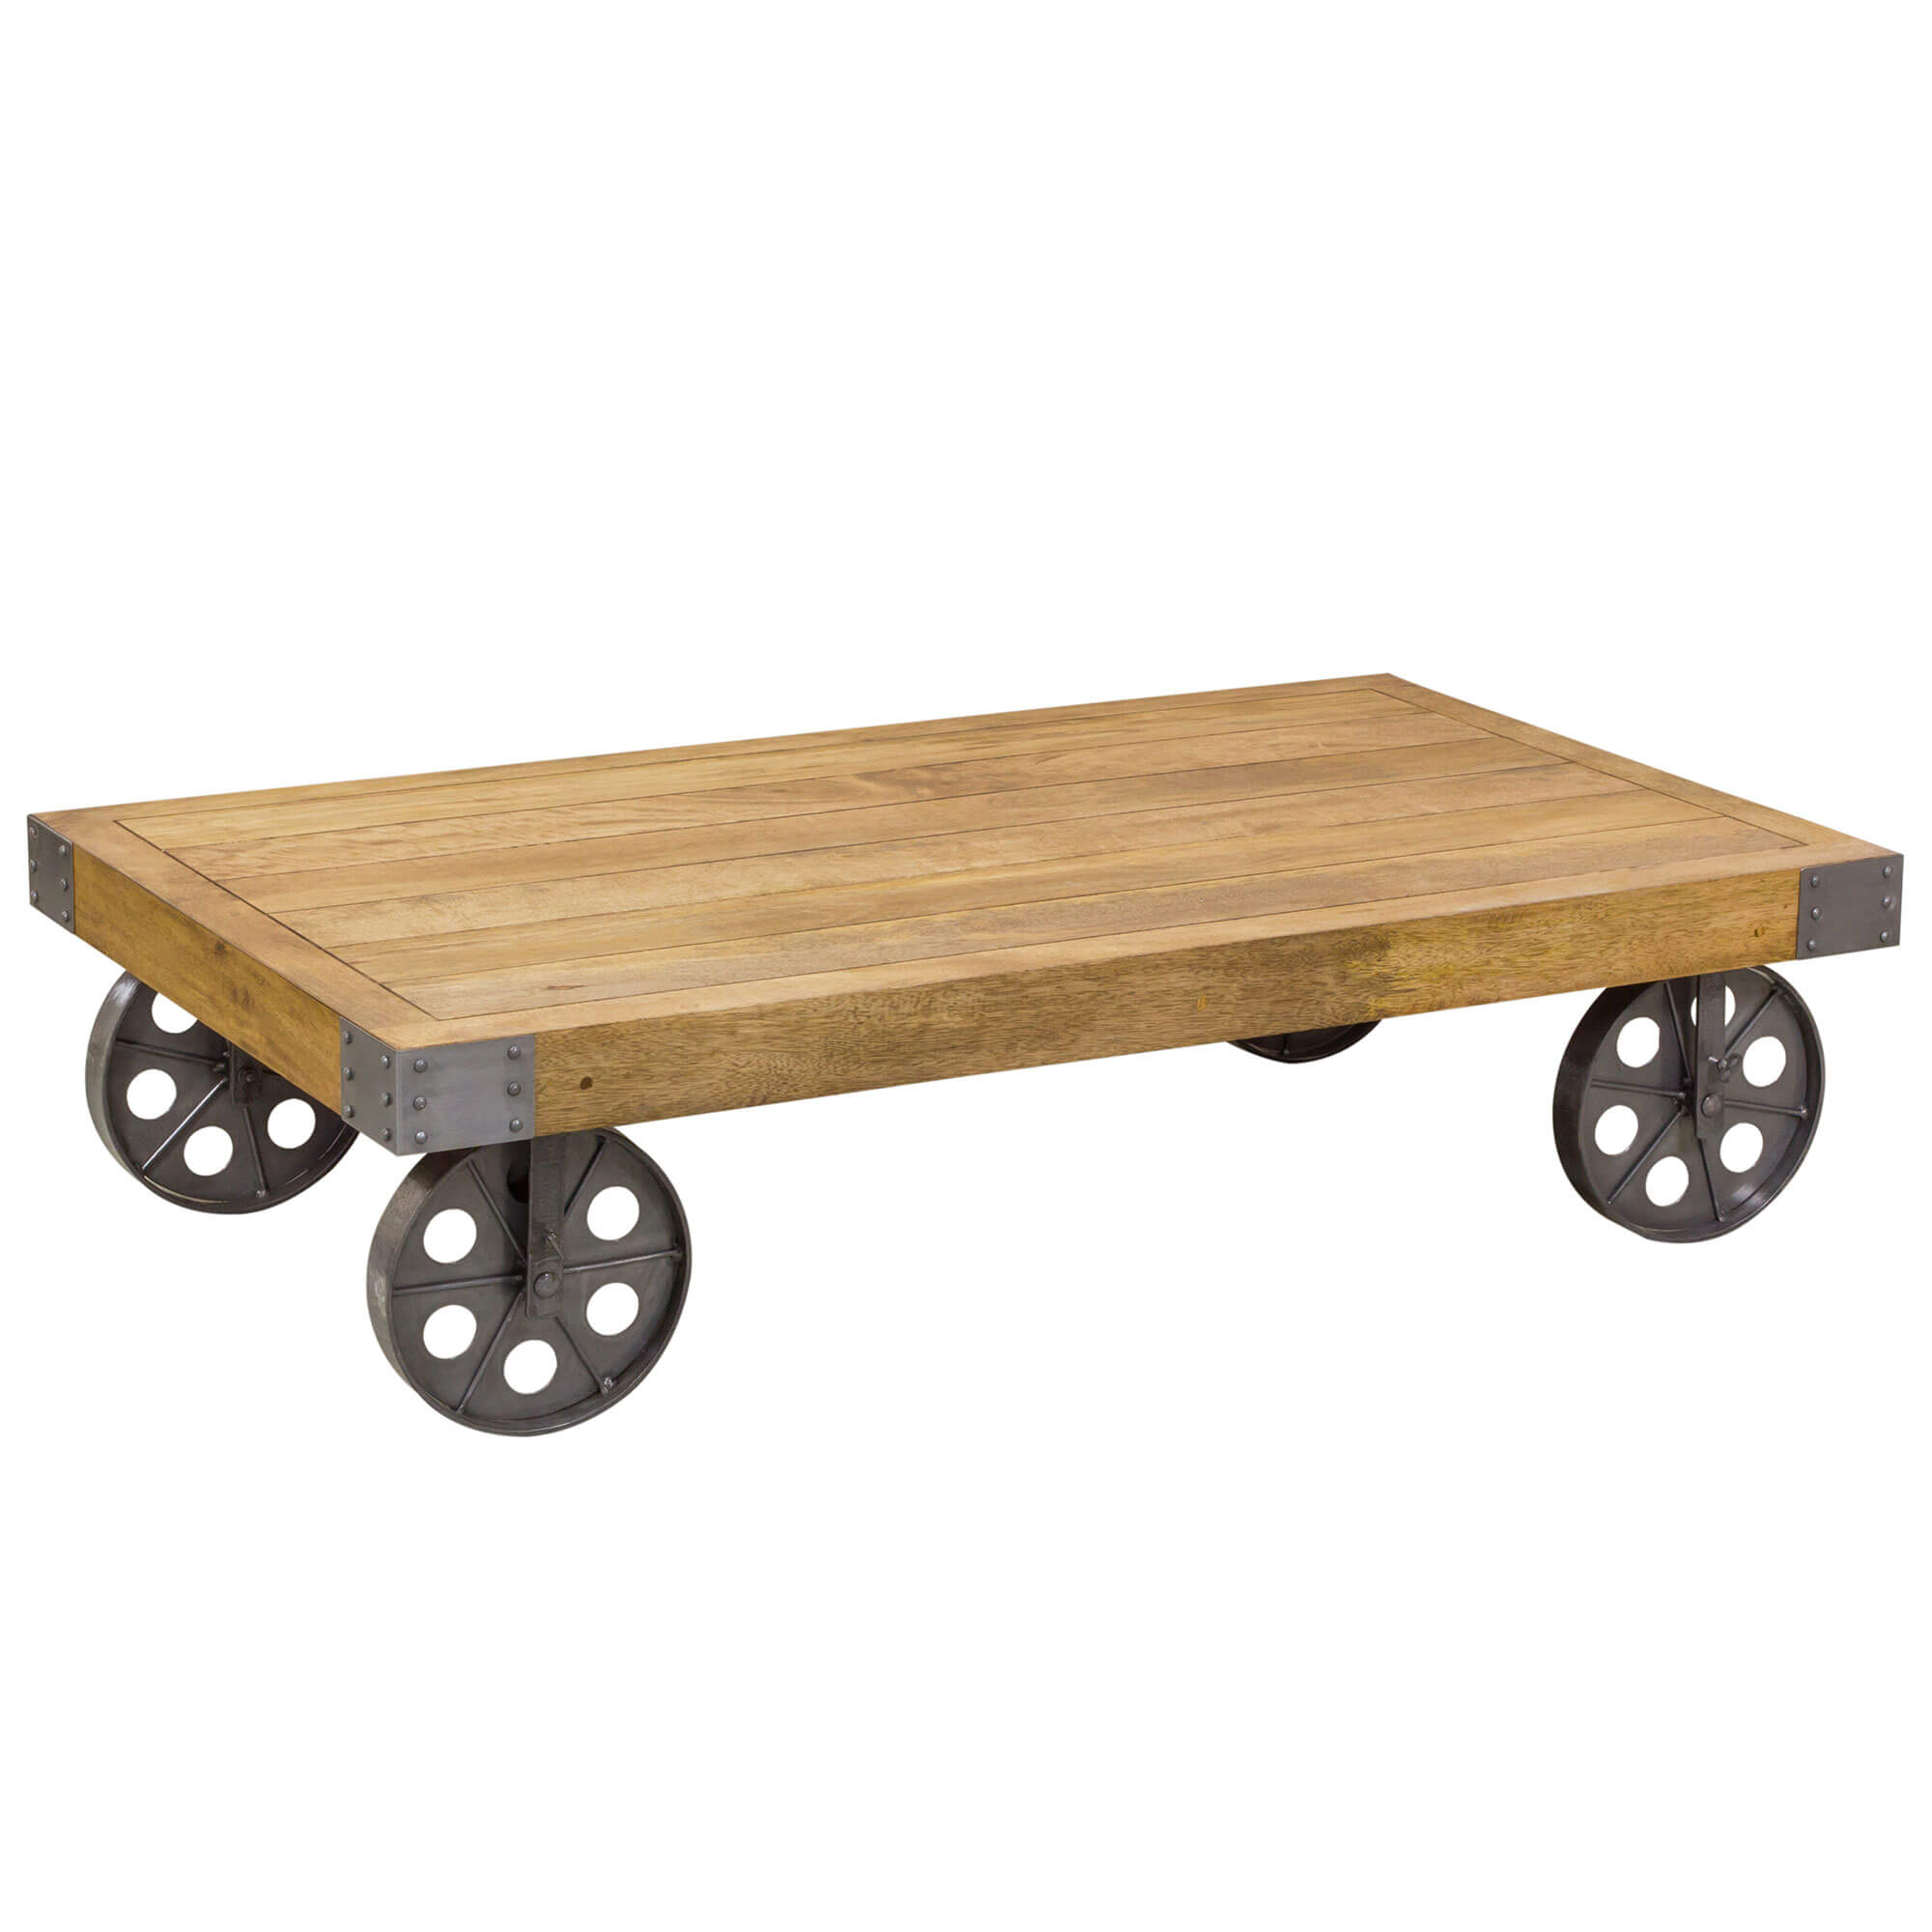 Urban Industrial Coffee table with Wheels | Furniture Supplies UK